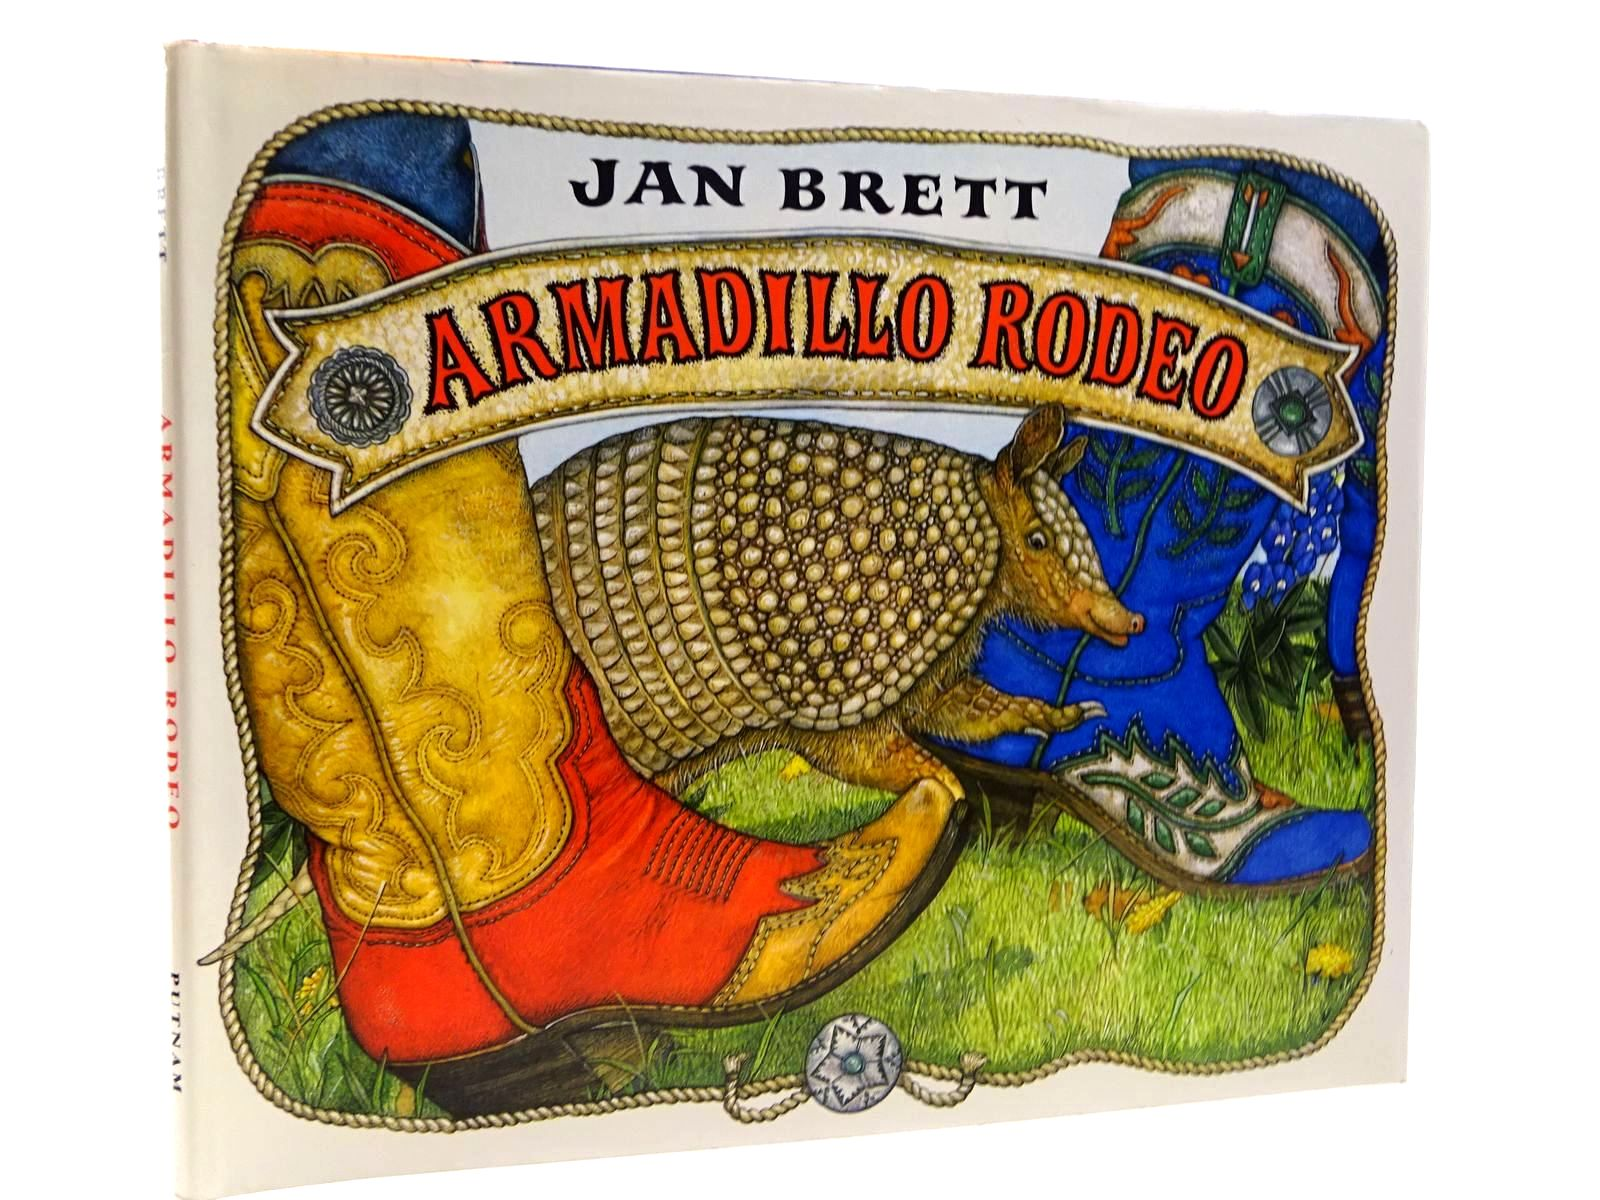 Photo of ARMADILLO RODEO written by Brett, Jan illustrated by Brett, Jan published by G.P. Putnam's Sons (STOCK CODE: 2130799)  for sale by Stella & Rose's Books